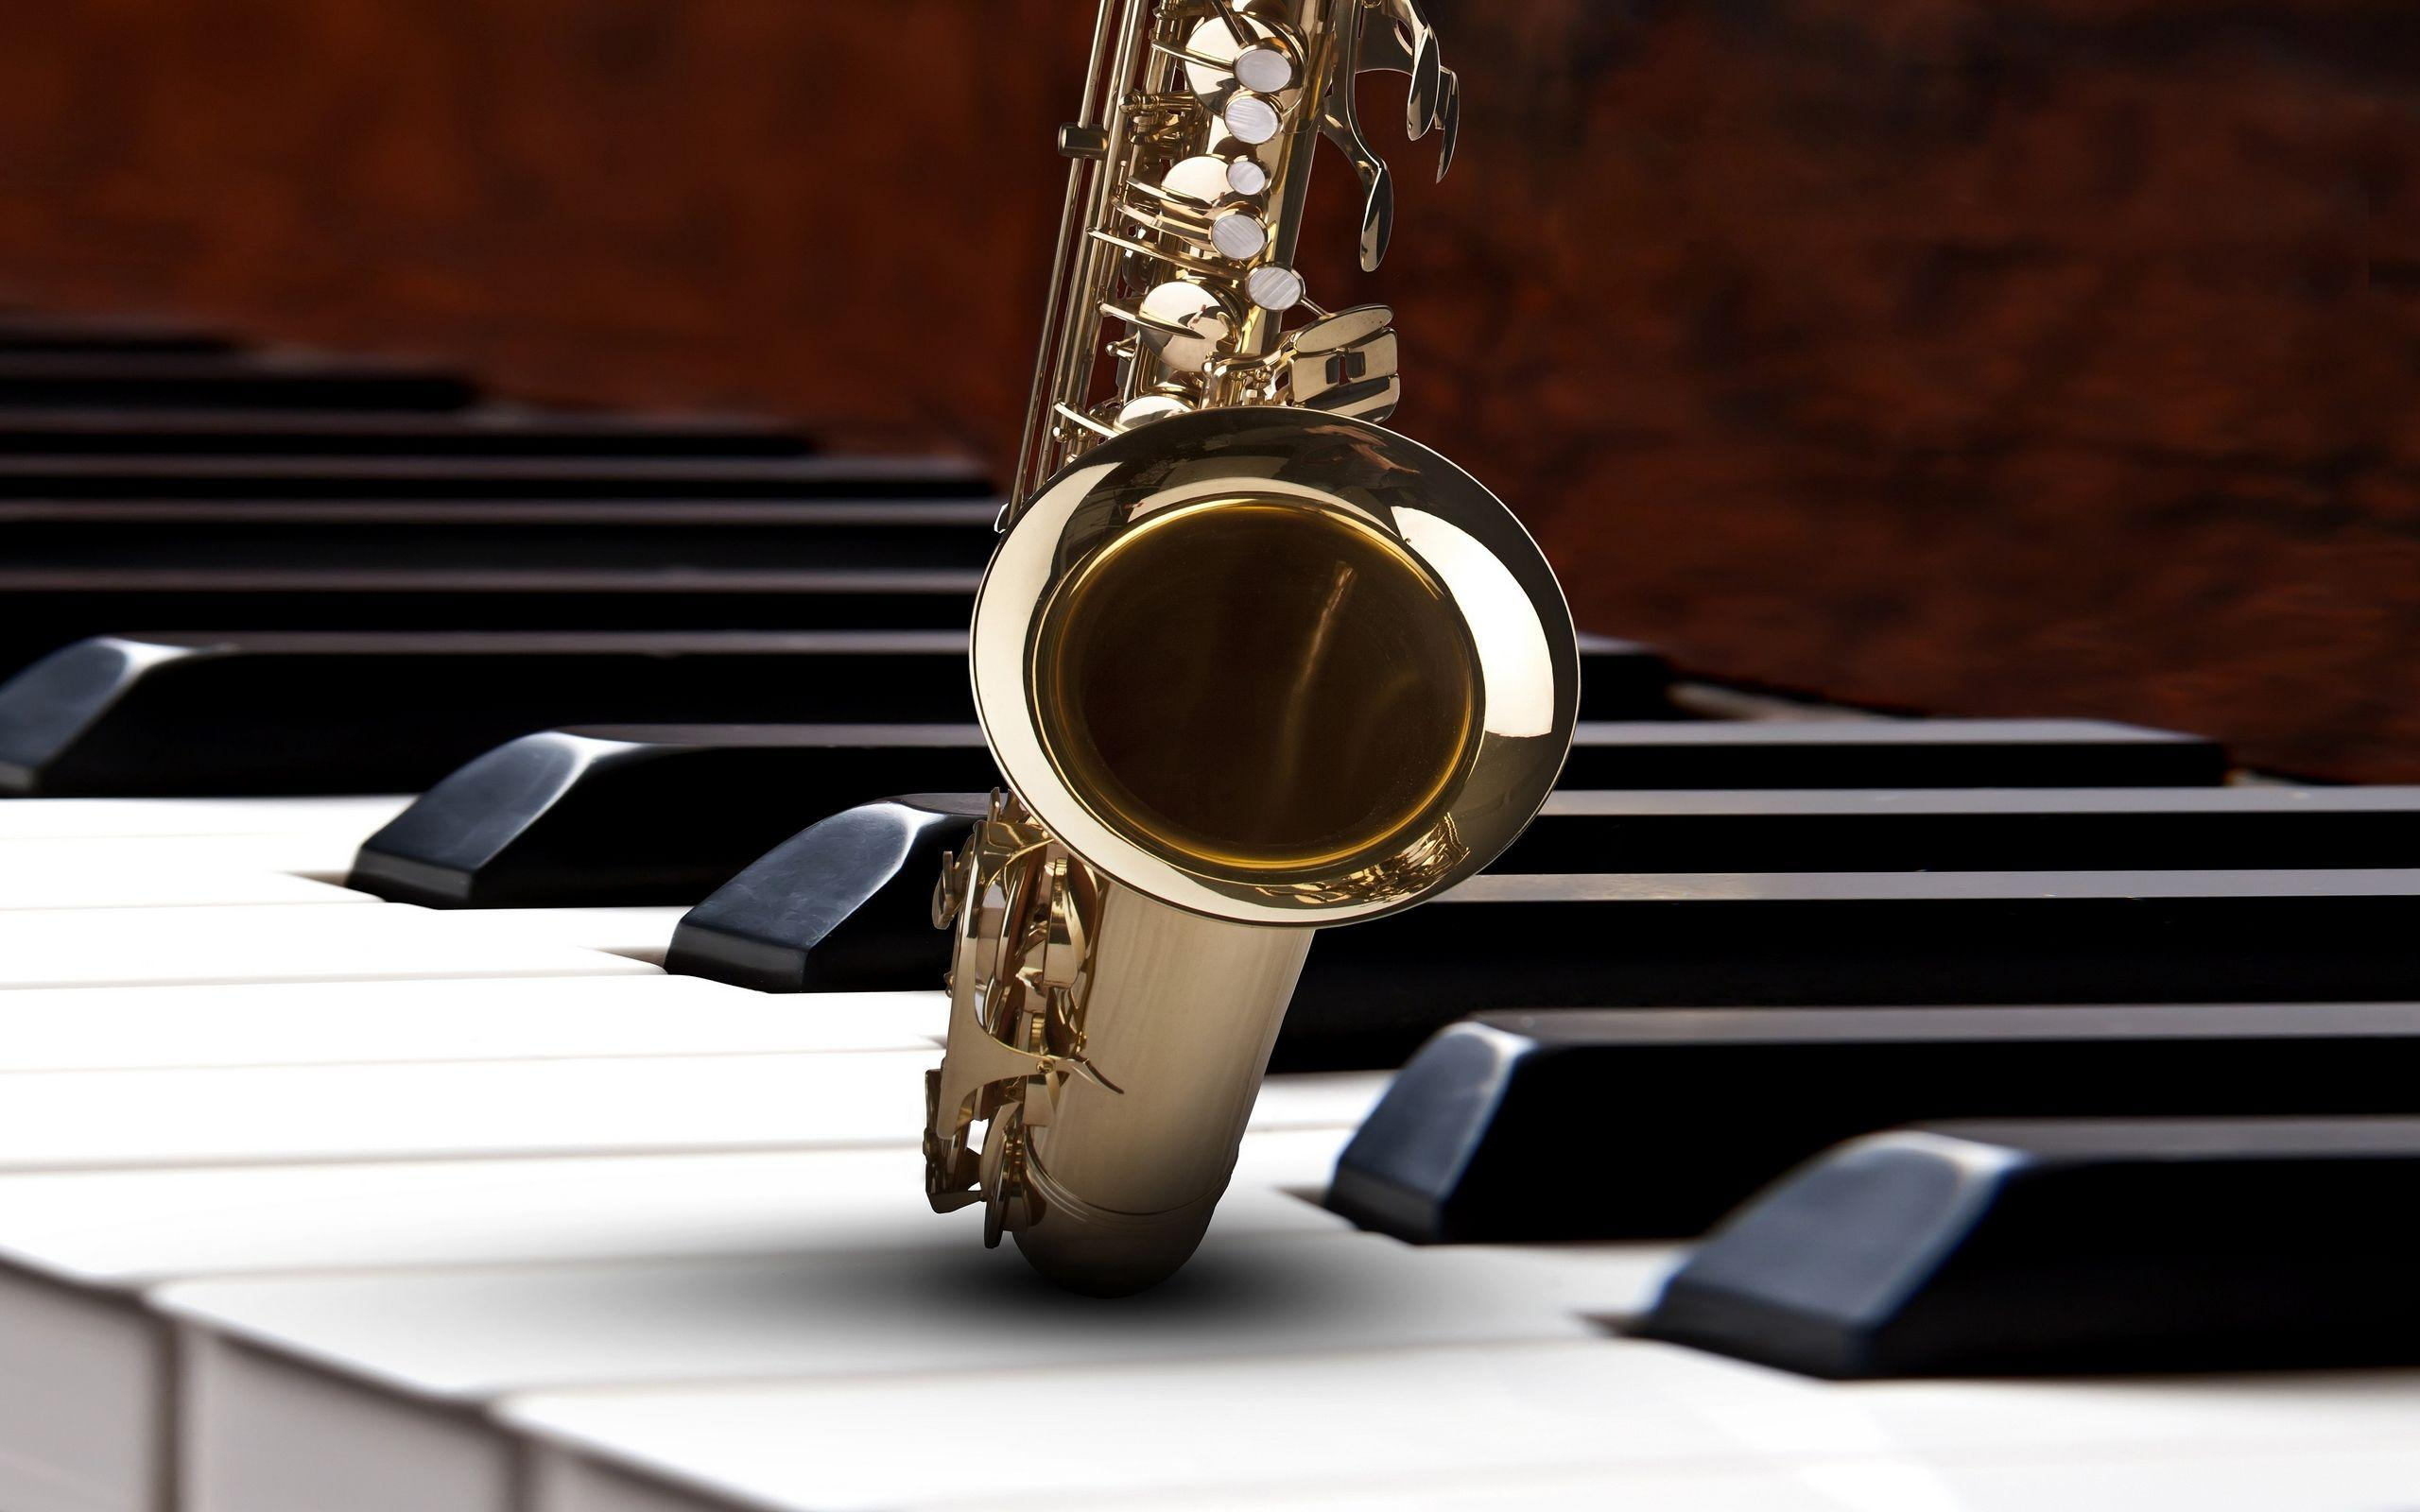 10 Saxophone HD Wallpapers | Backgrounds - Wallpaper Abyss